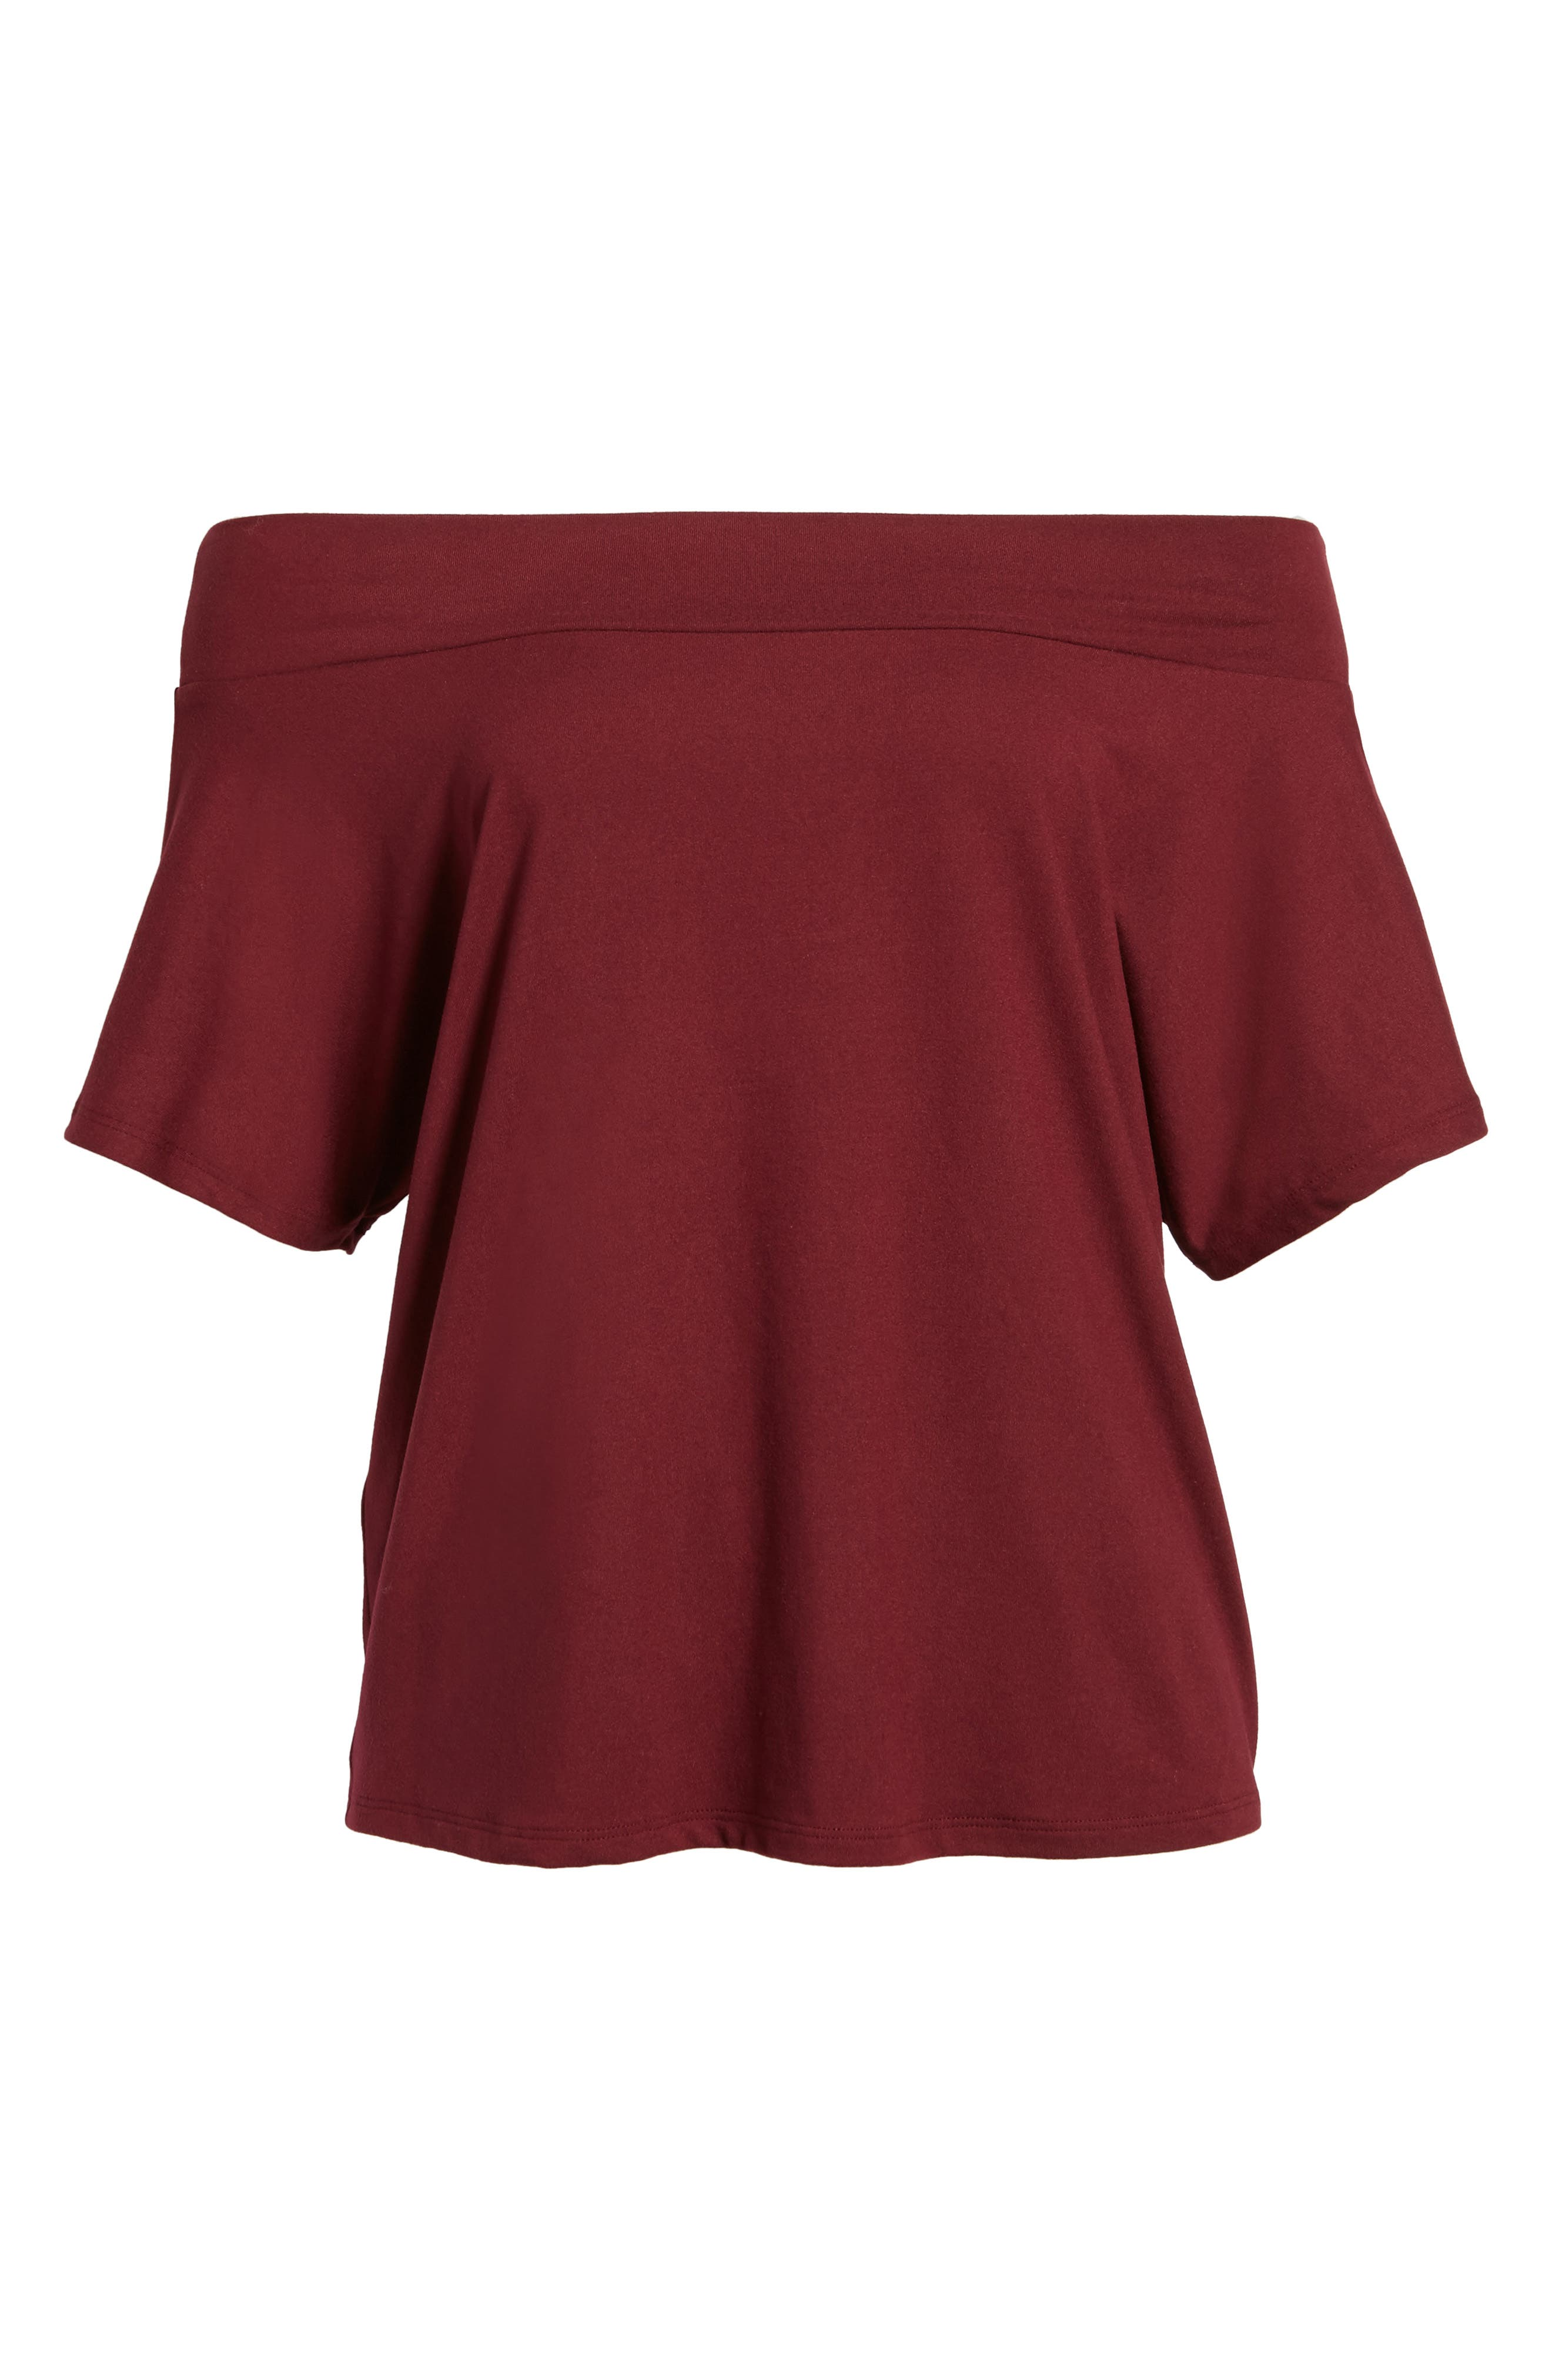 Dolman Sleeve Off the Shoulder Tee,                             Alternate thumbnail 6, color,                             930